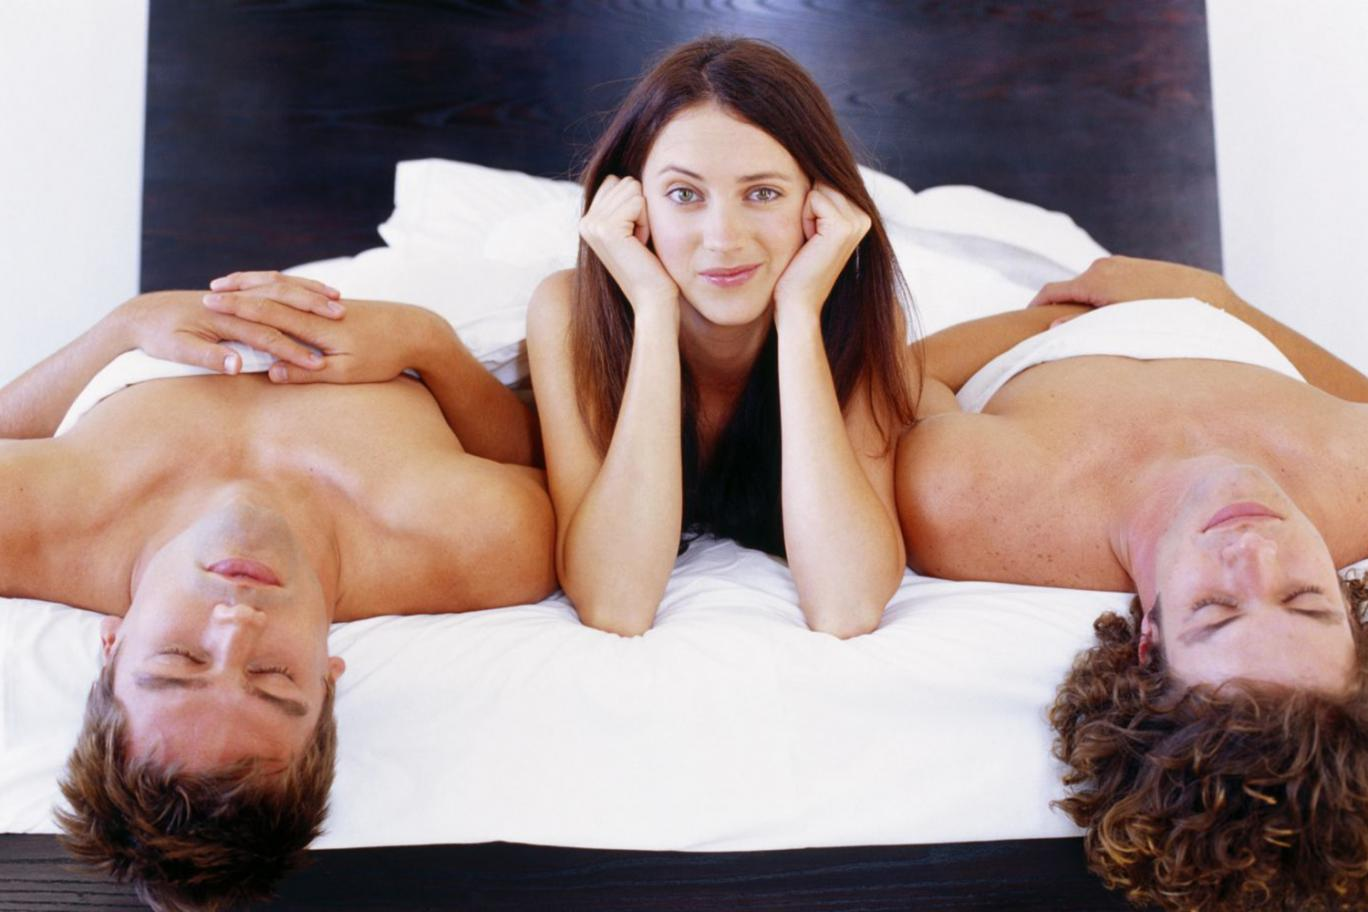 In a threesome do girls hook up